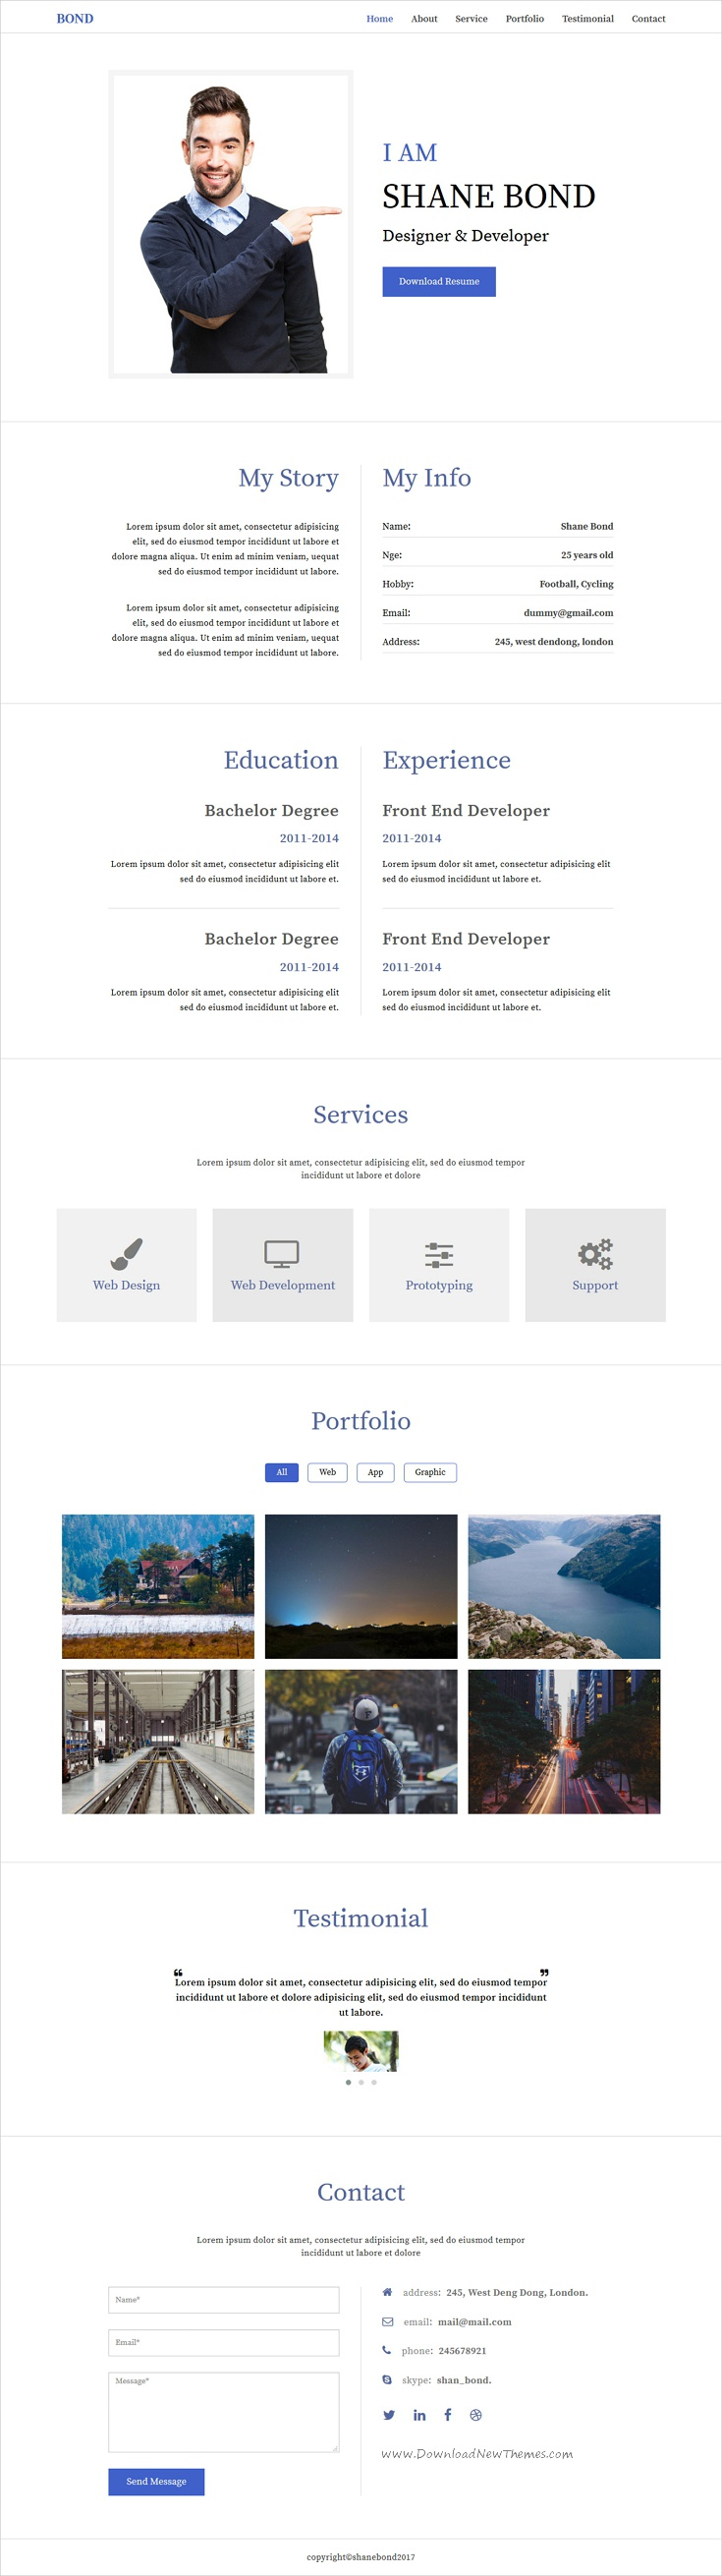 Bond is clean and modern design #bootstrap template for professional #resume, CV and #portfolio showcase website download now..